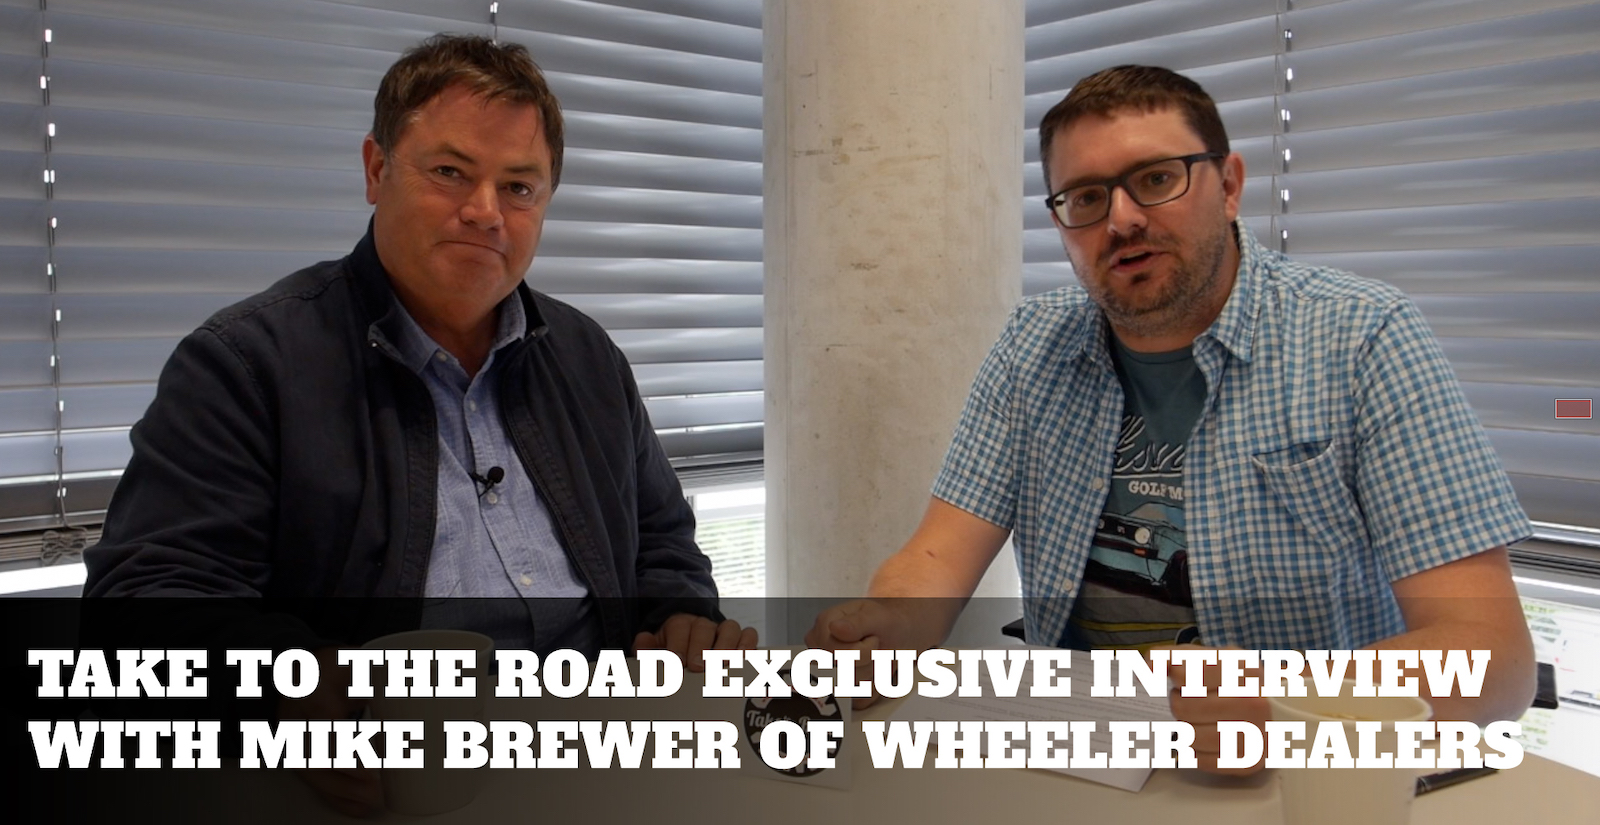 Take to the Road's Exclusive Interview with Mike Brewer of Wheeler Dealers